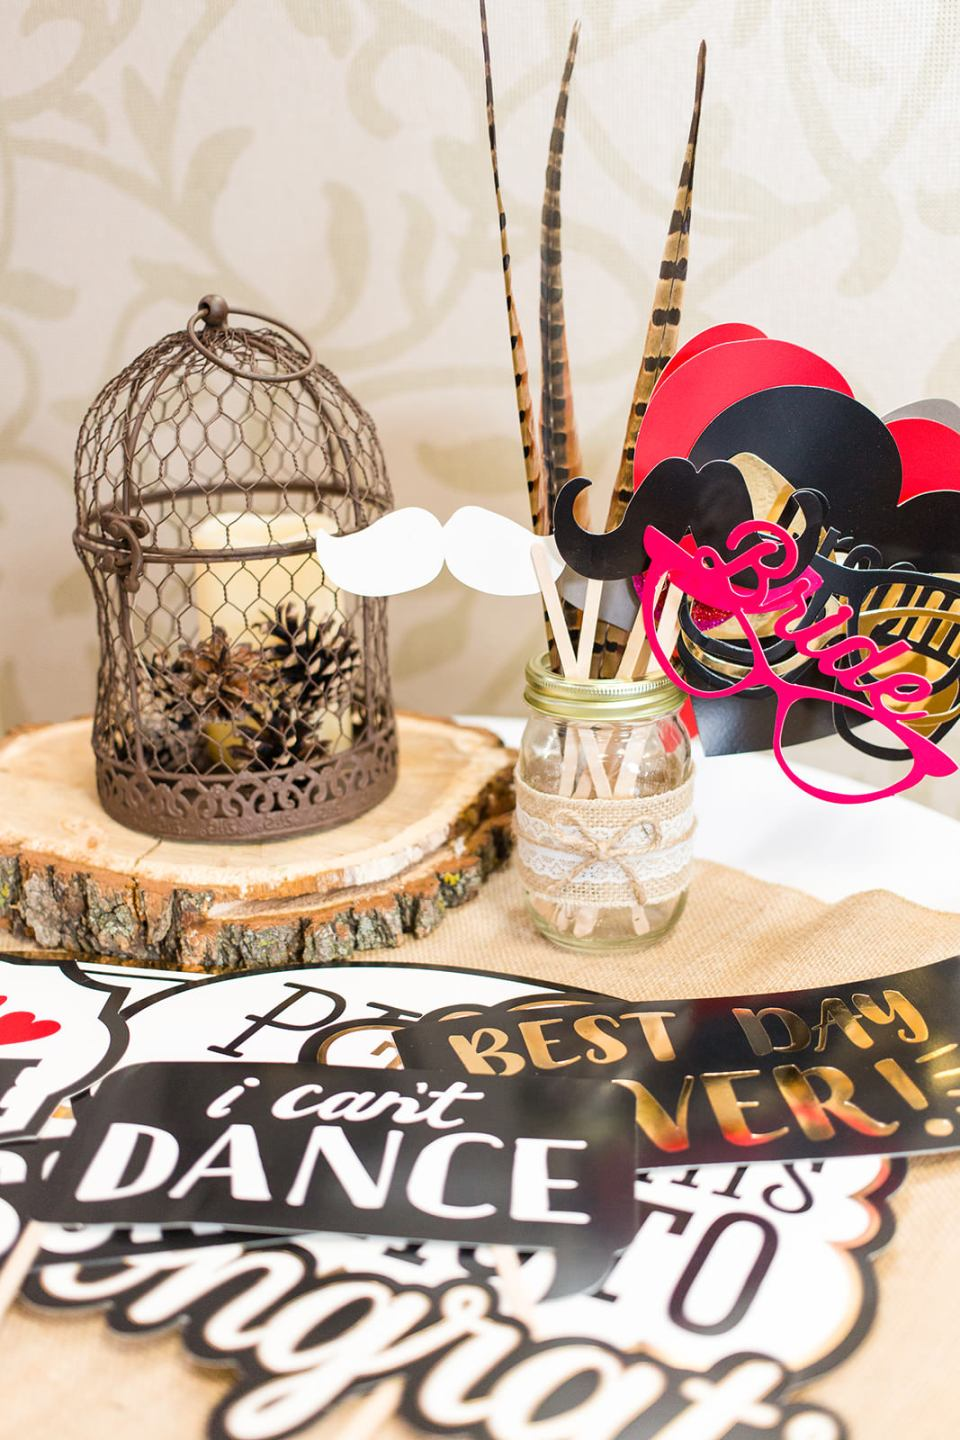 Photo props for photo Alternative guest books